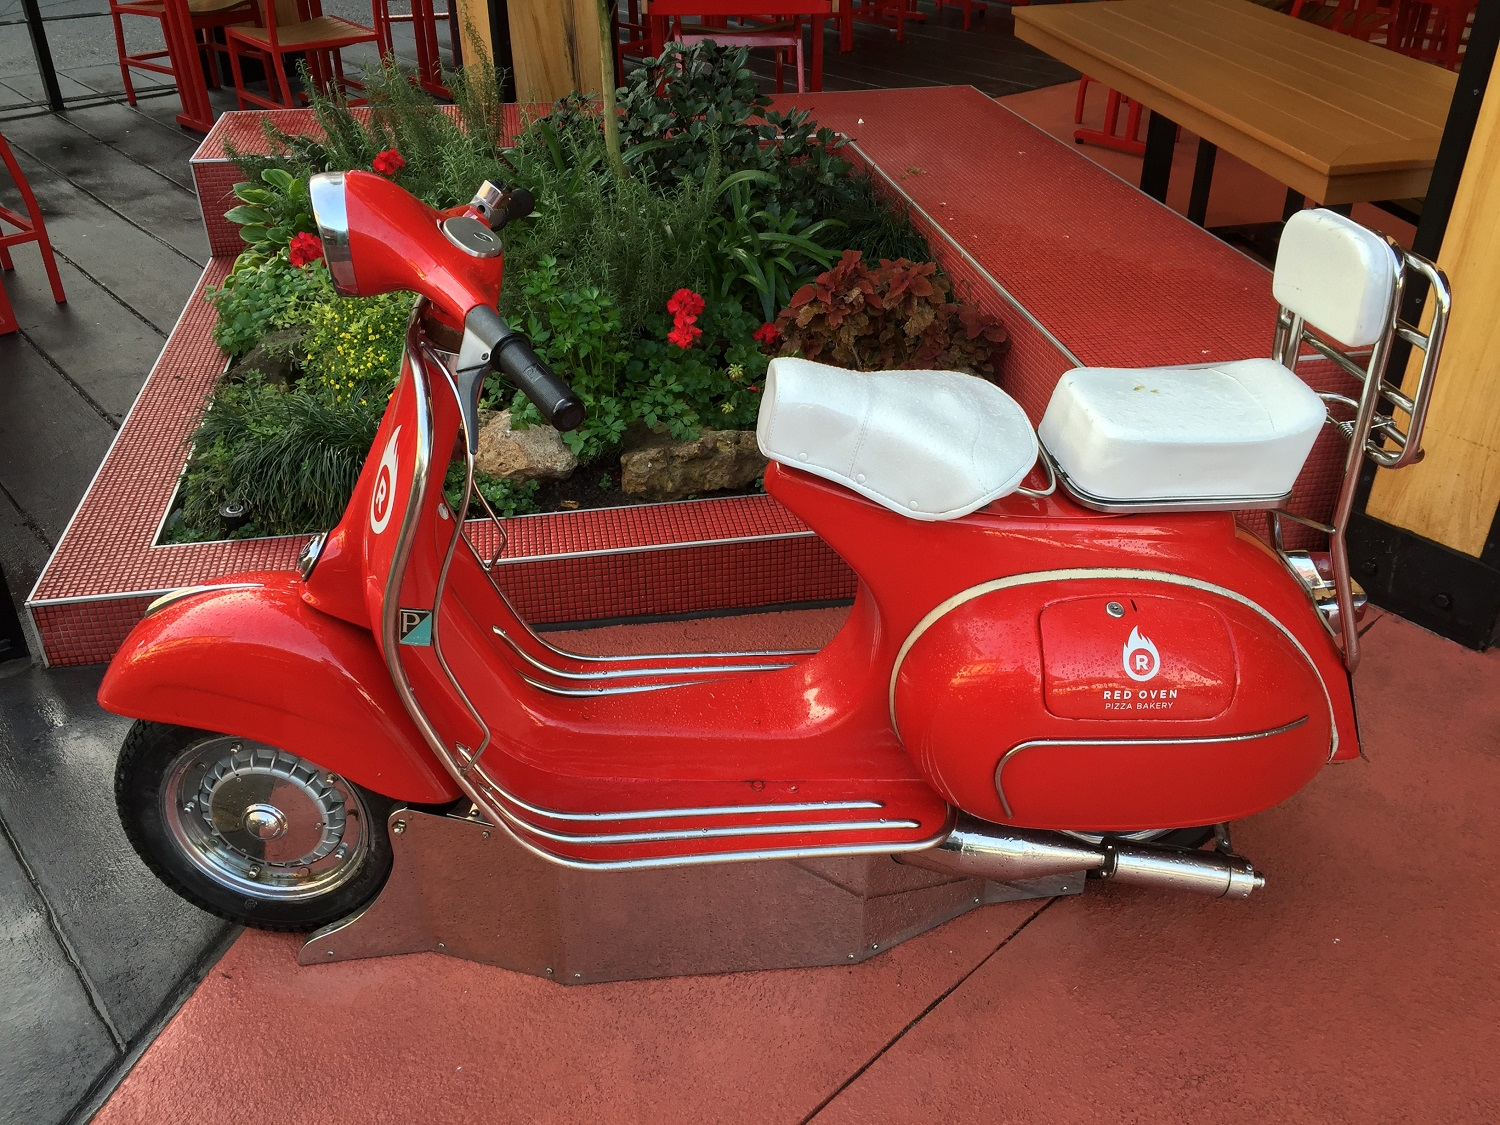 The scooter parked outside of Red Oven Pizza Bakery.